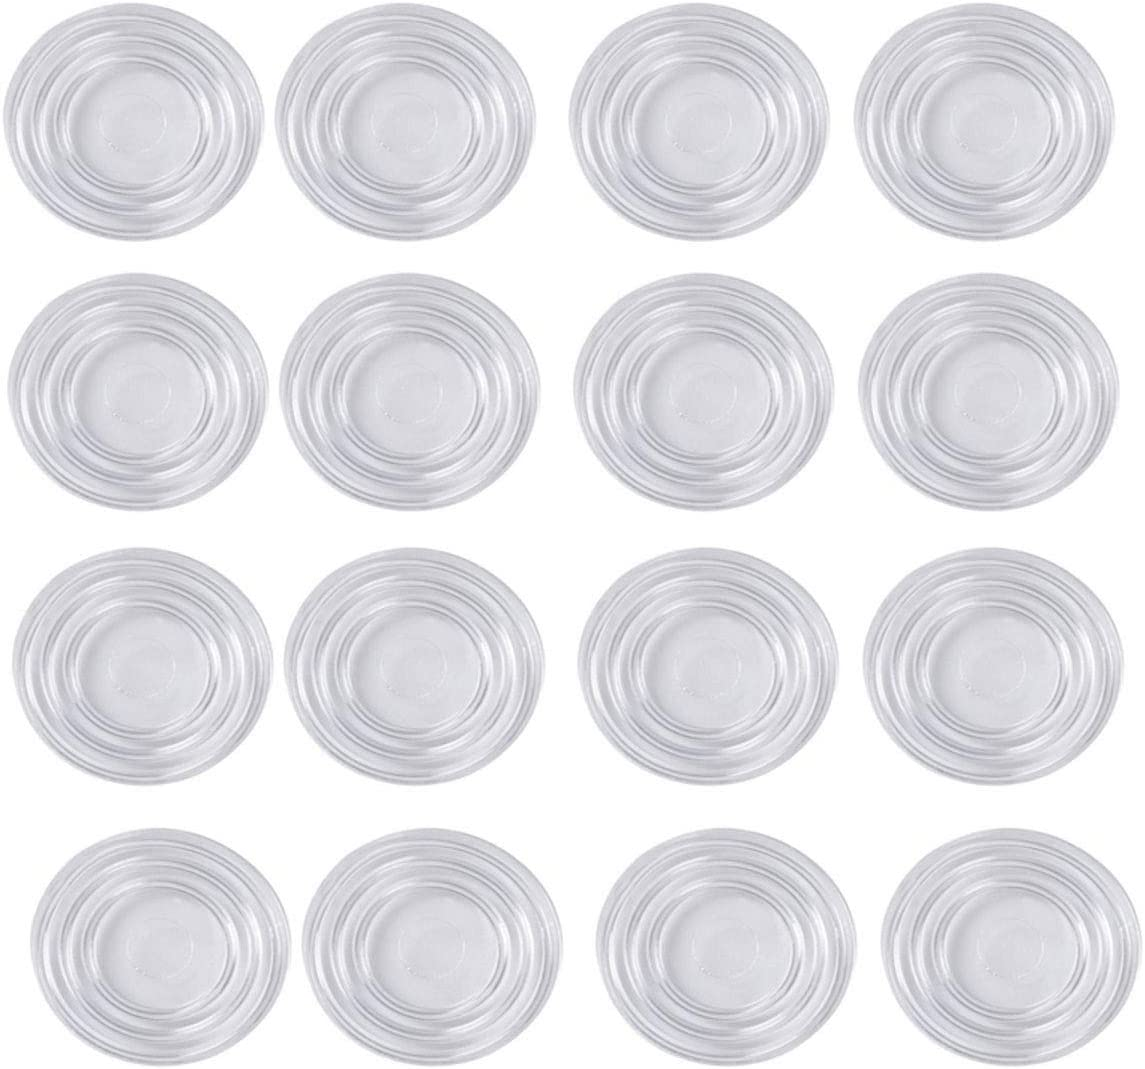 PZRT 16pcs Glass Top Table Bumpers Round Shape Glass Table Non-Slip Soft Grip Pad Furniture Accessories